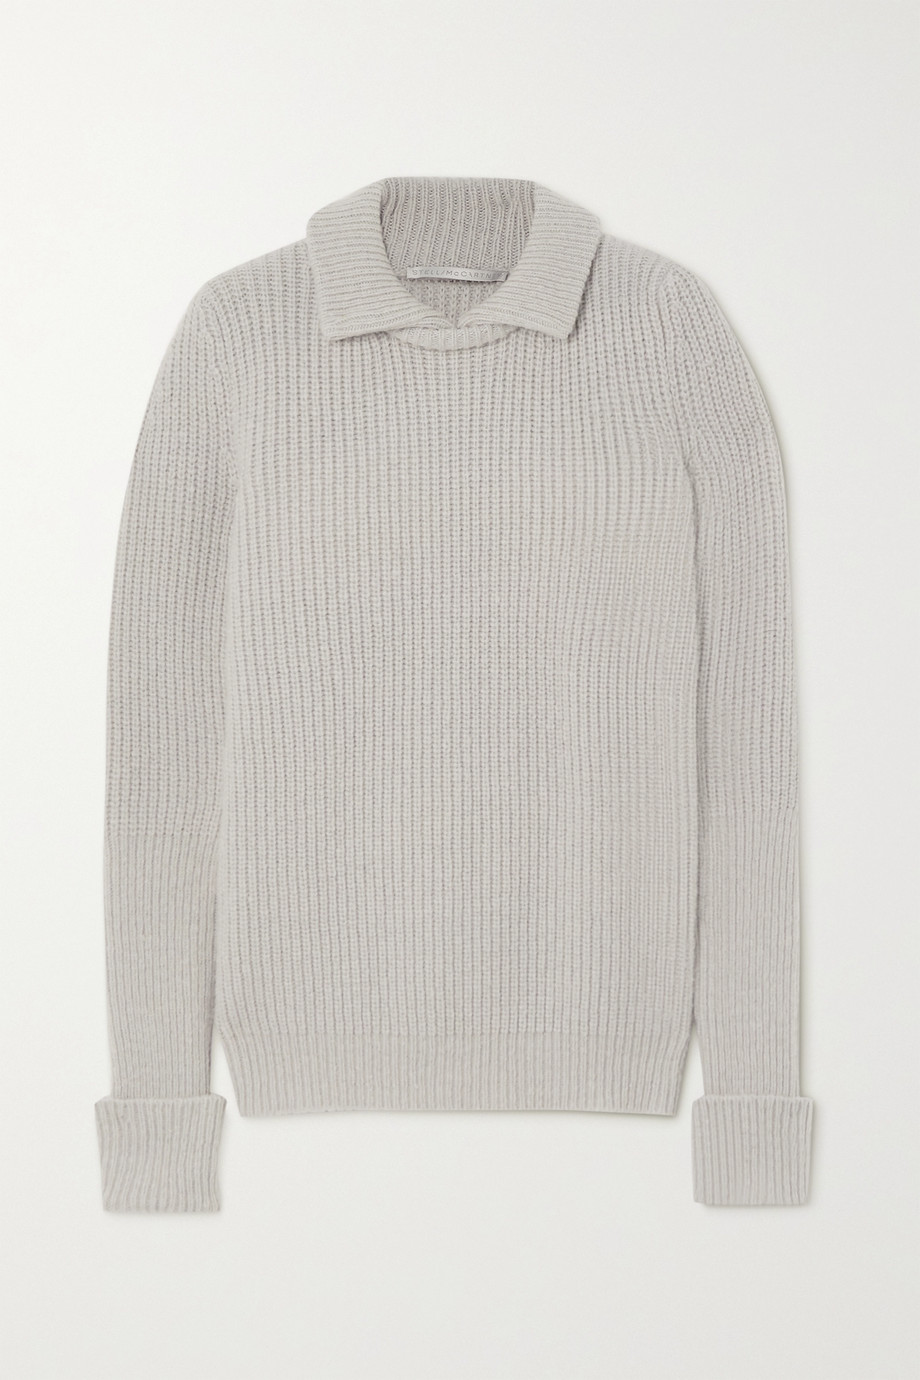 Stella McCartney Ribbed wool-blend sweater